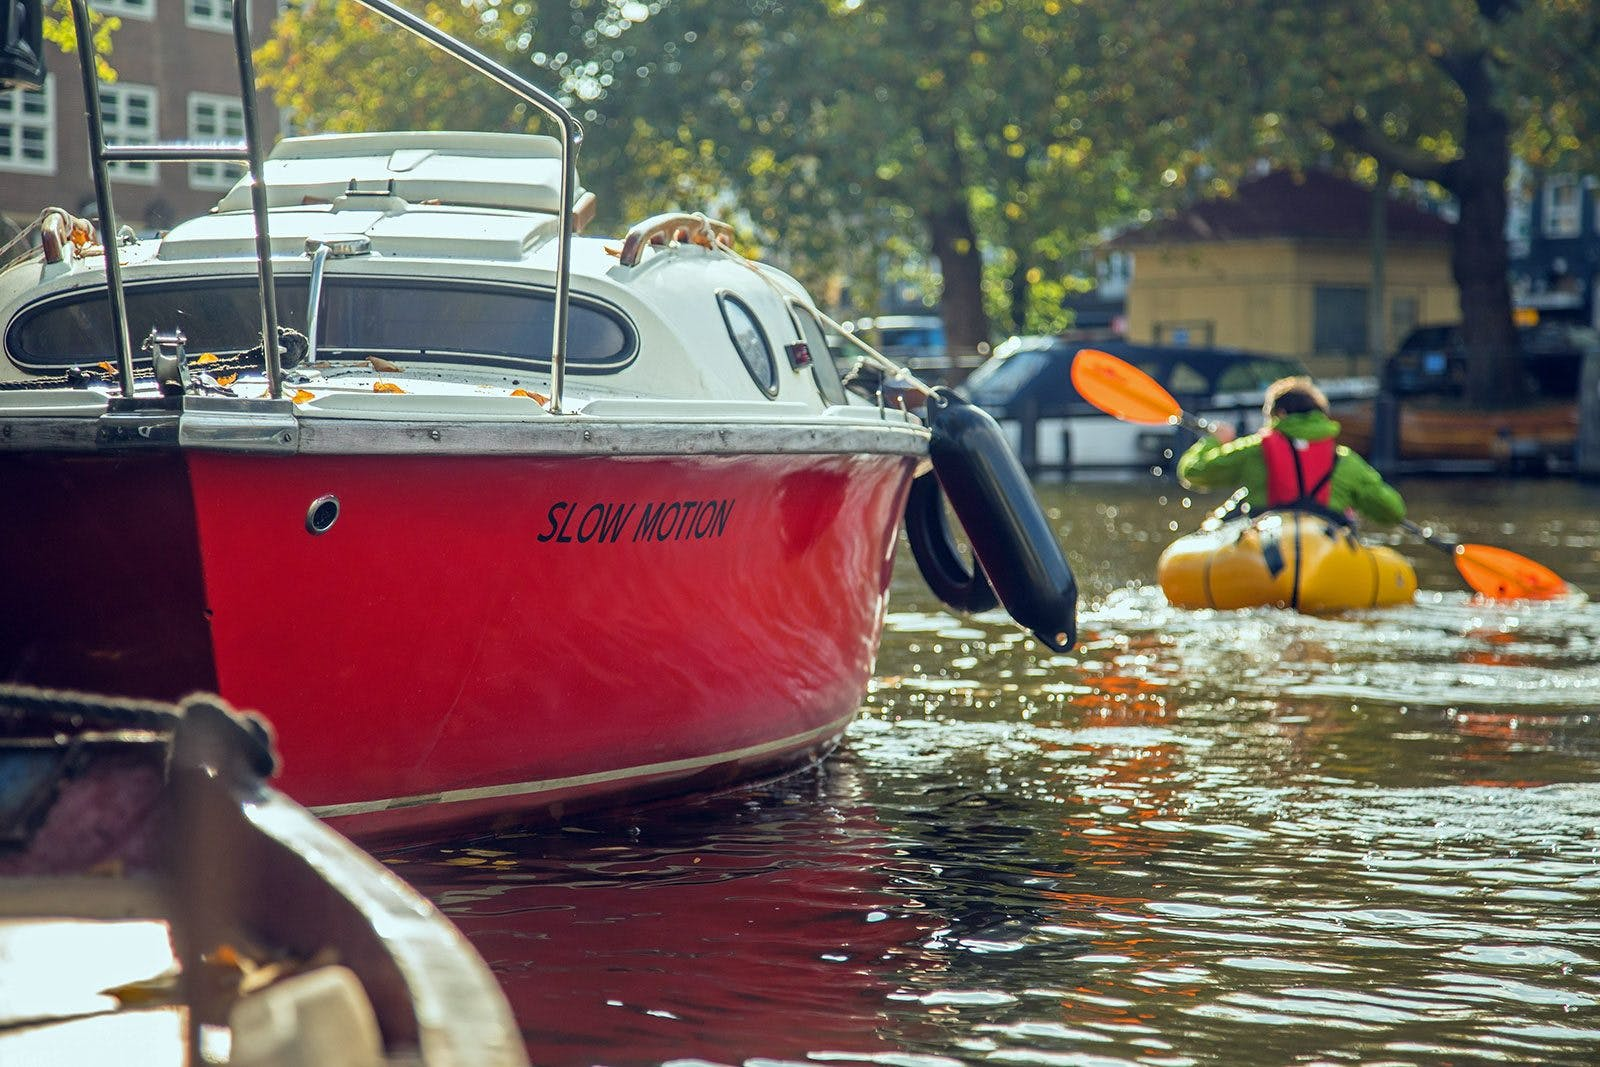 Jacob Hatstrup Haagensen paddling the canals of Amsterdam. Photo by Neil Irwin.